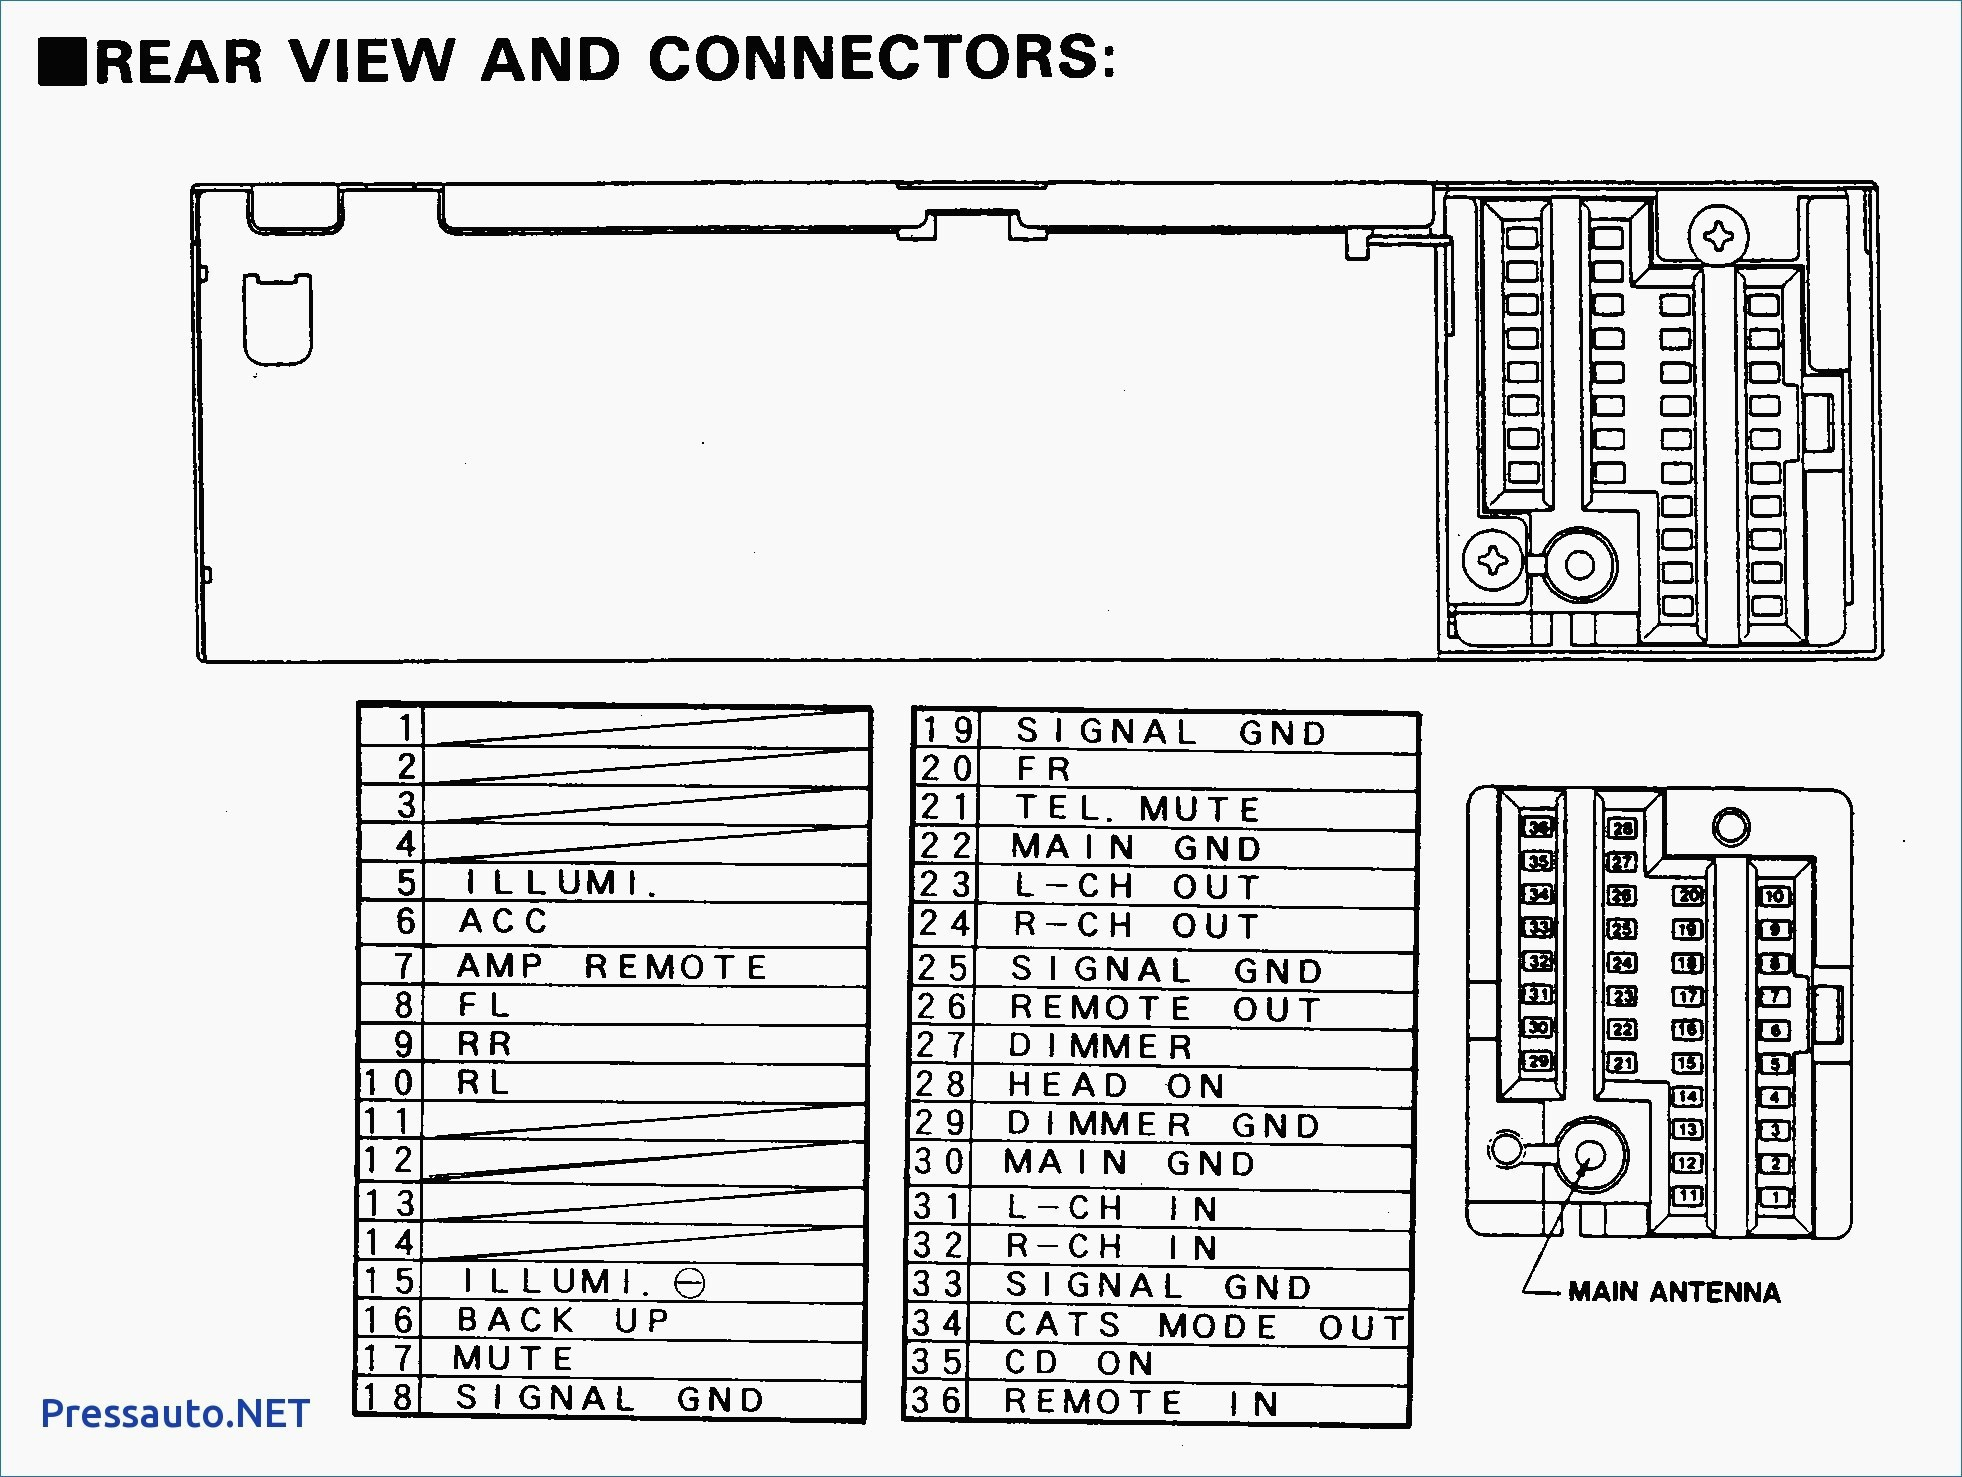 Wiring Diagram for Amplifier Car Stereo New Amplifier Wiring Diagram Inspirational Car Stereo Wiring Diagrams 0d